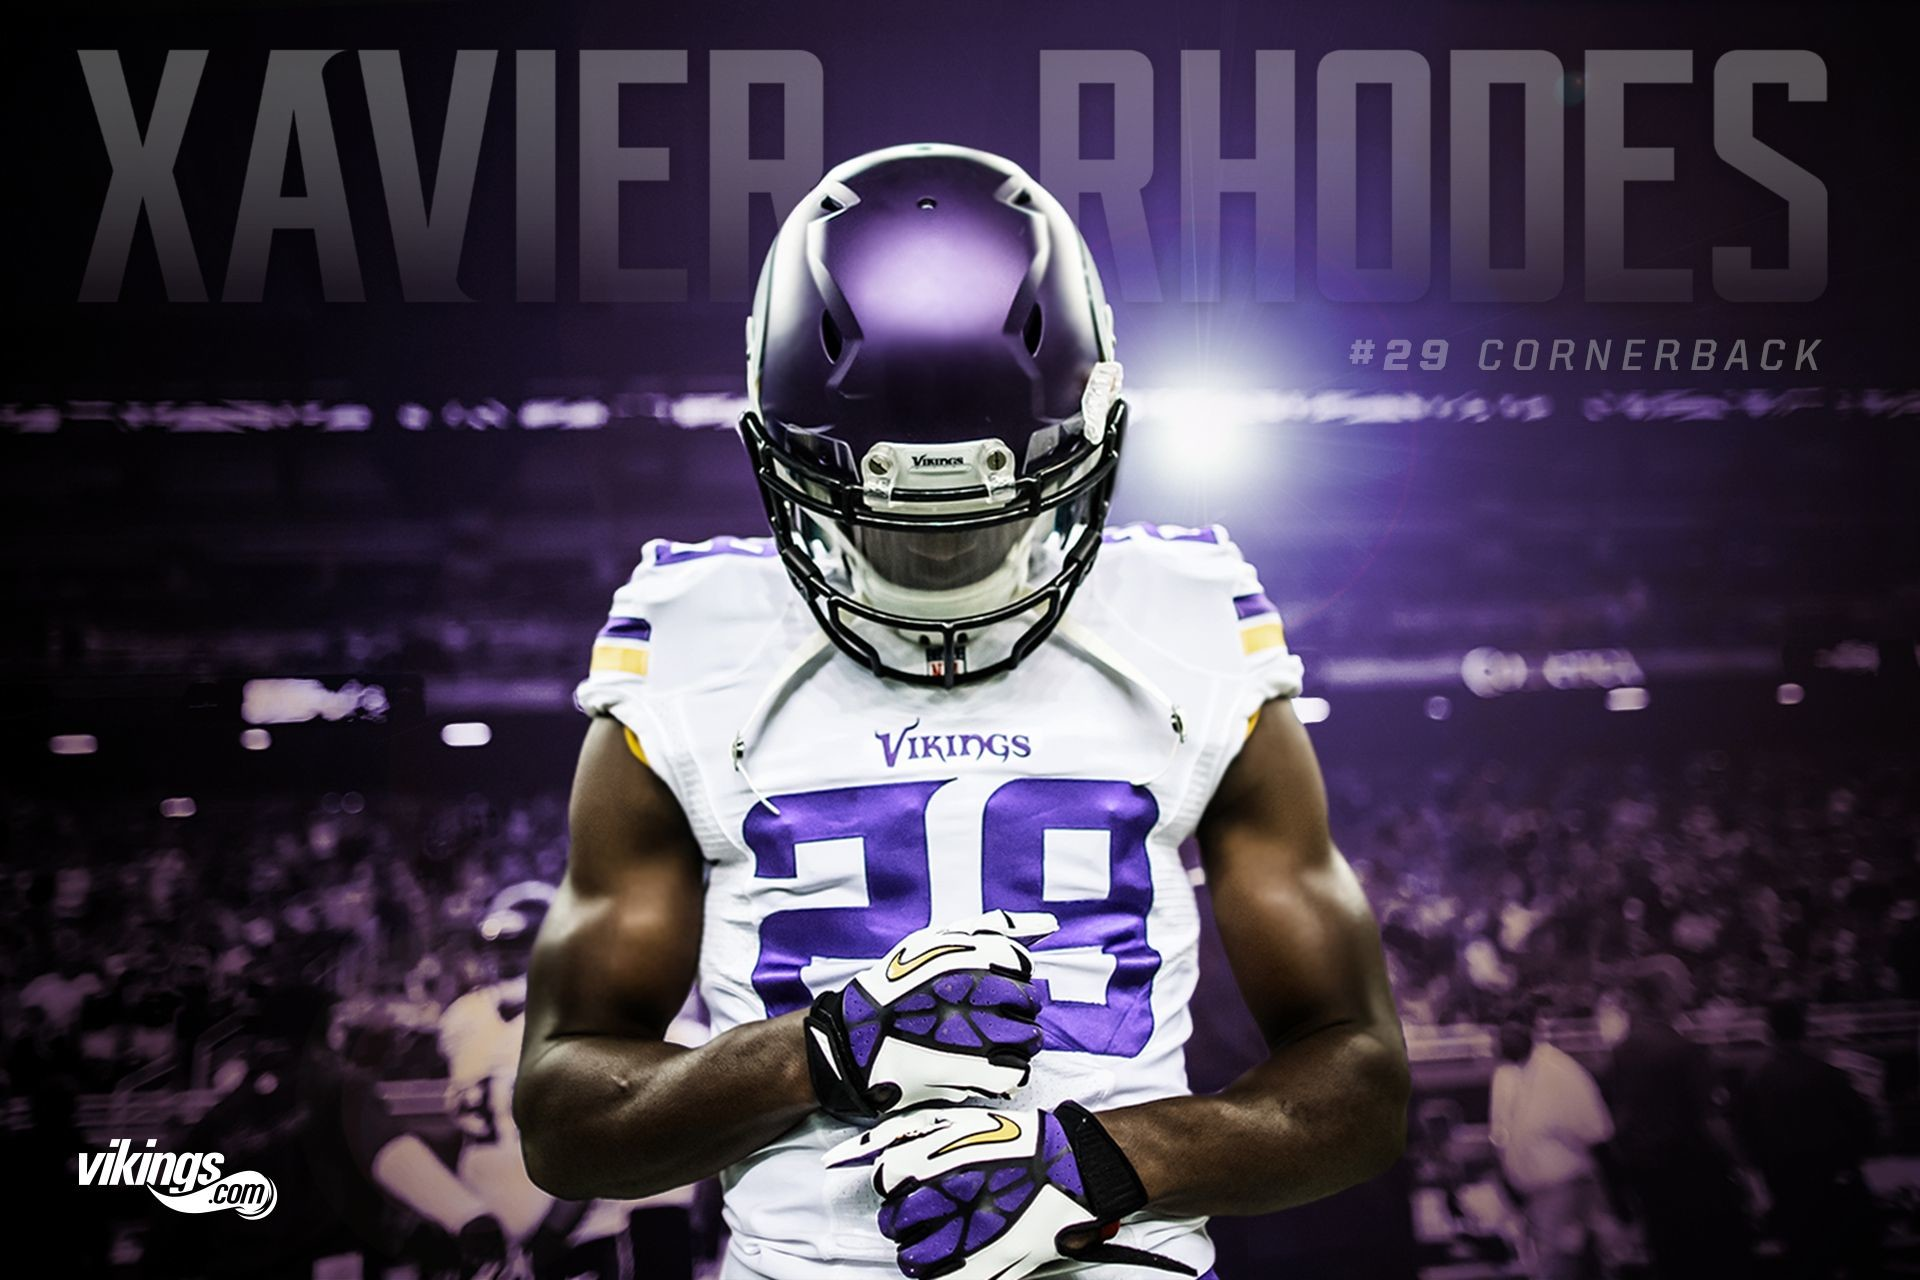 1920x1280 Xavier Rhodes - Minnesota Vikings Minnesota Vikings Wallpaper, Xavier  Rhodes, Viking Hall, Viking